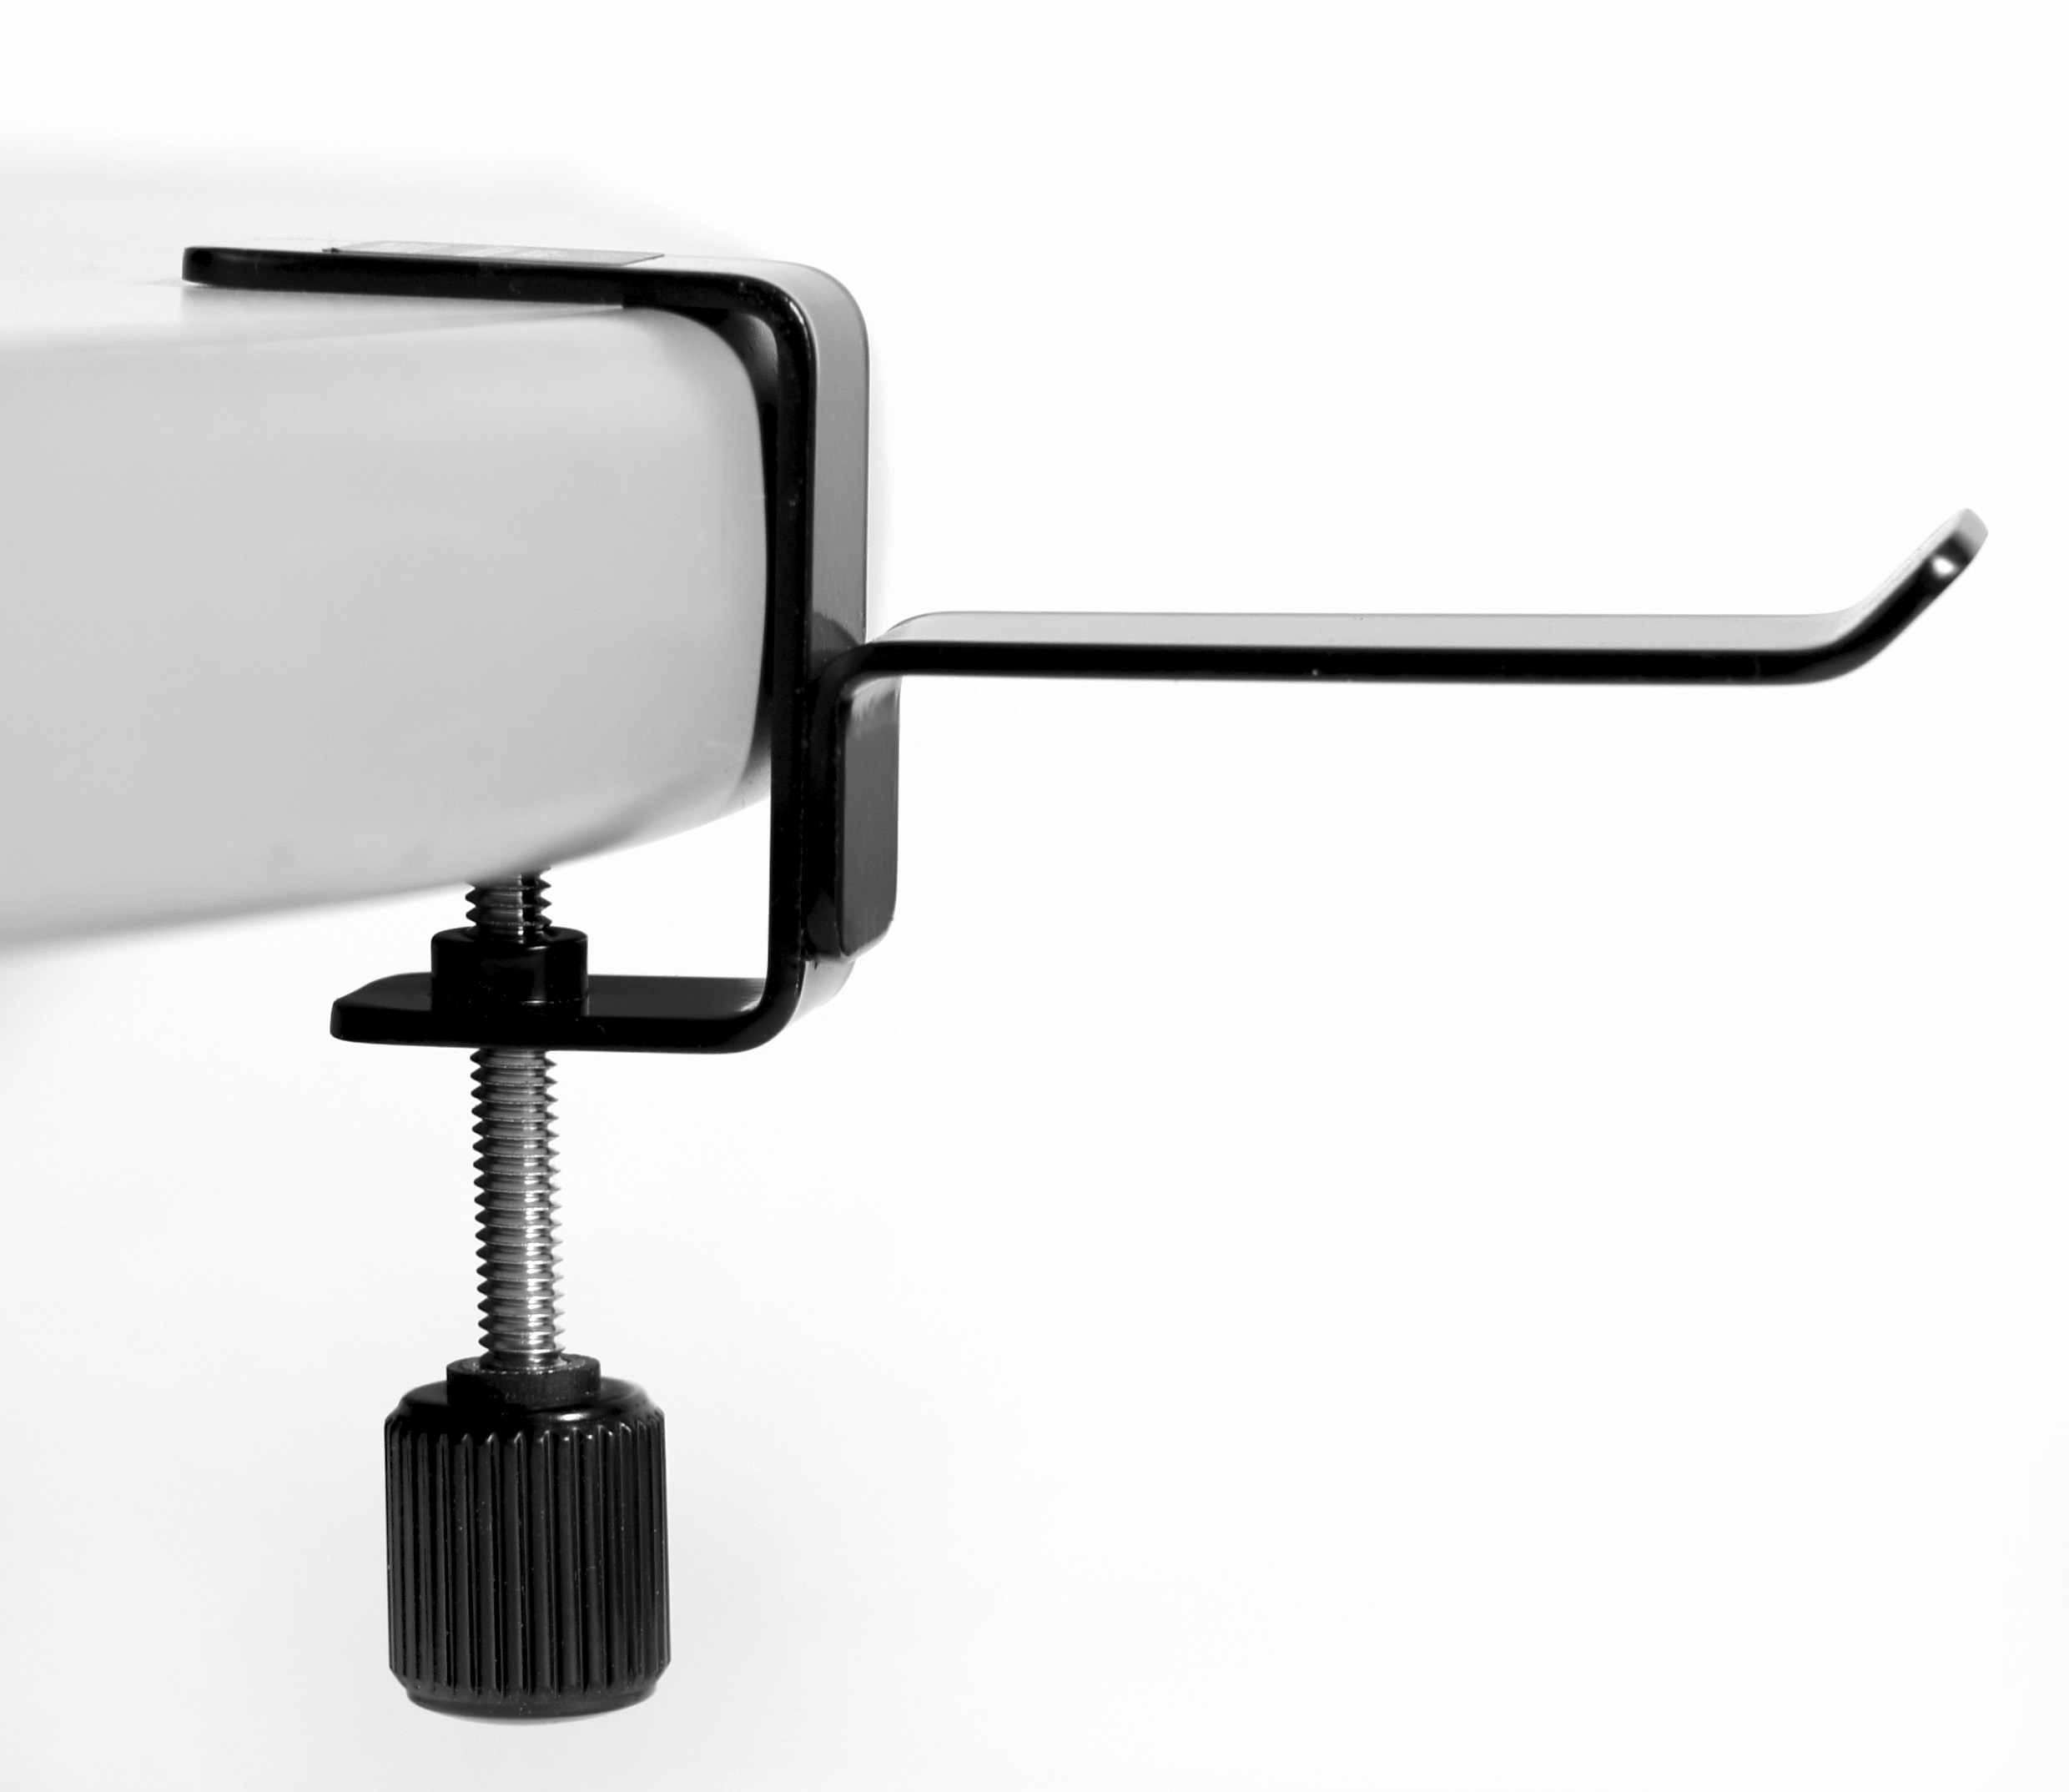 Stedman Dhh Desk Mount Headphone Hanger